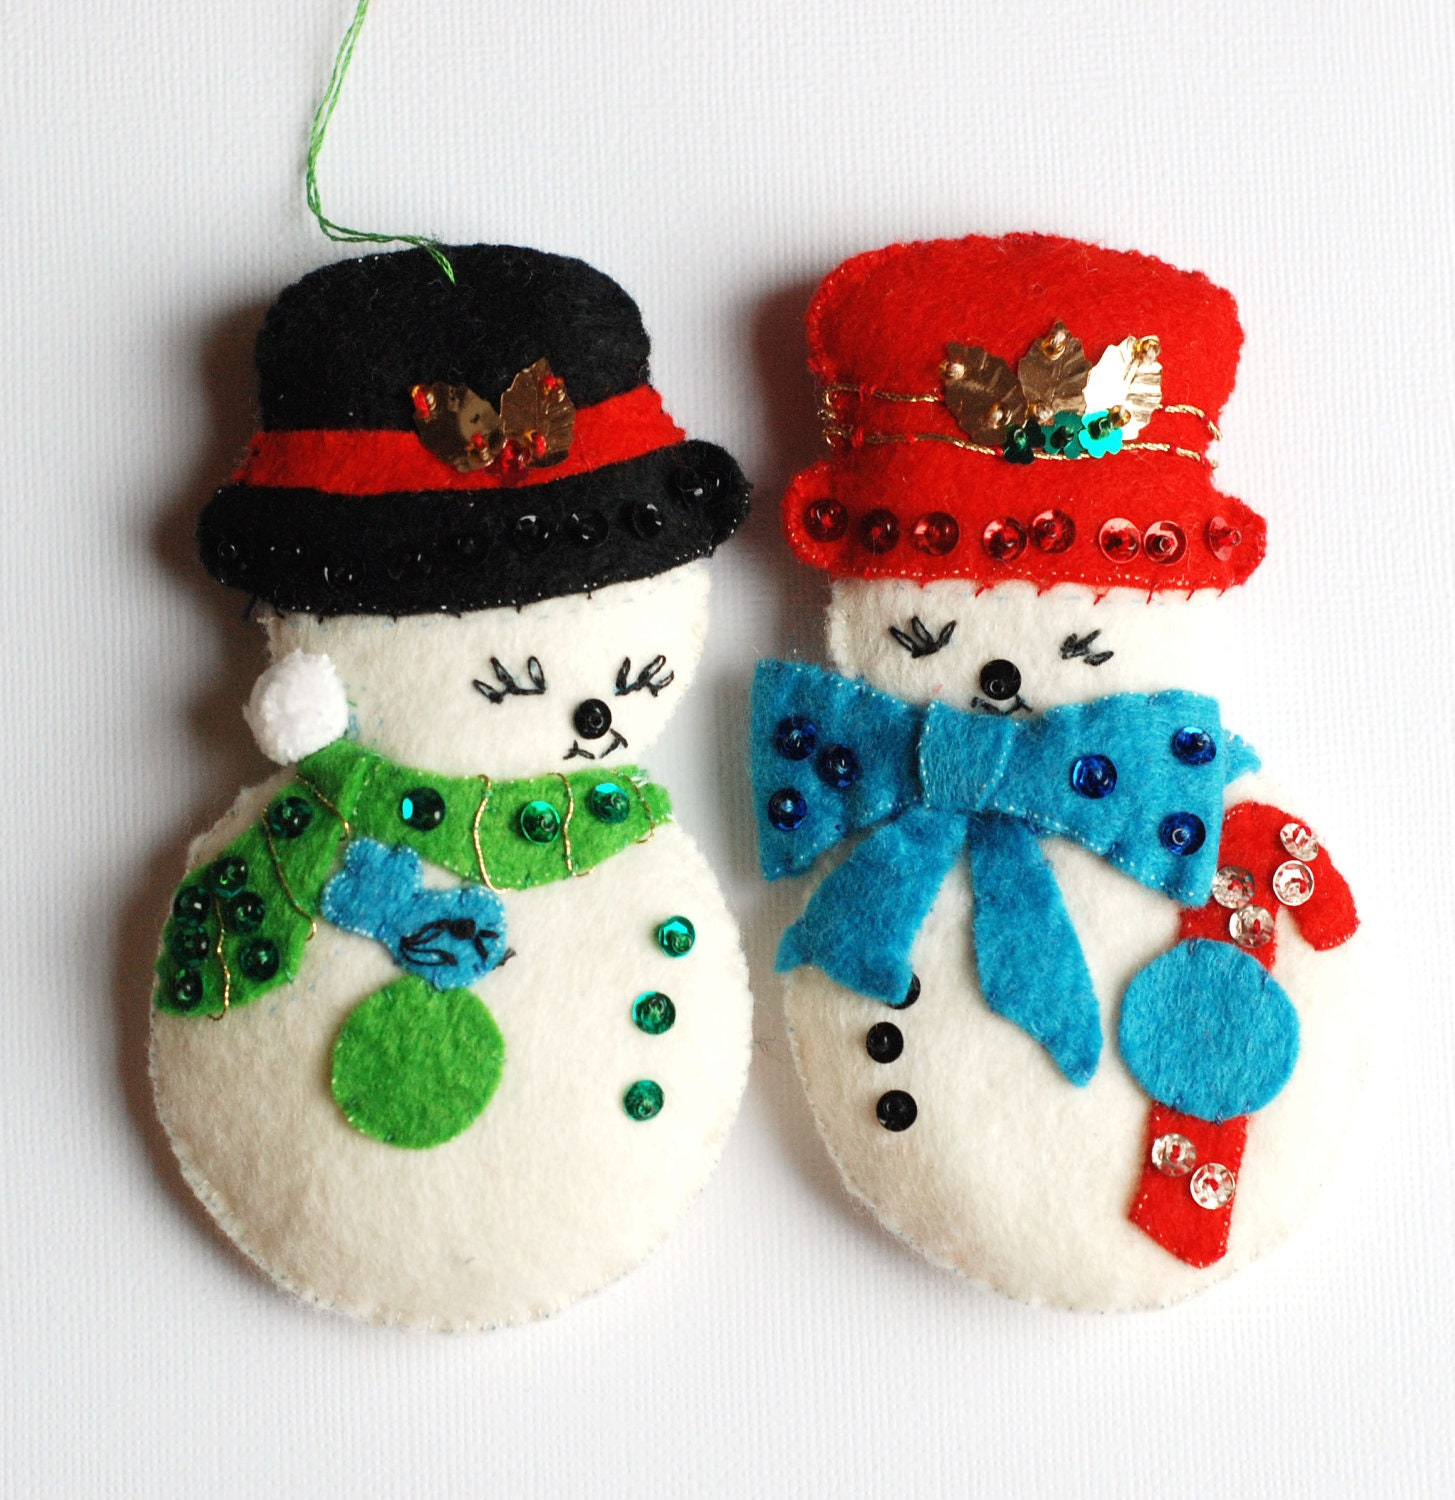 Snowman vintage felt ornaments with sequins